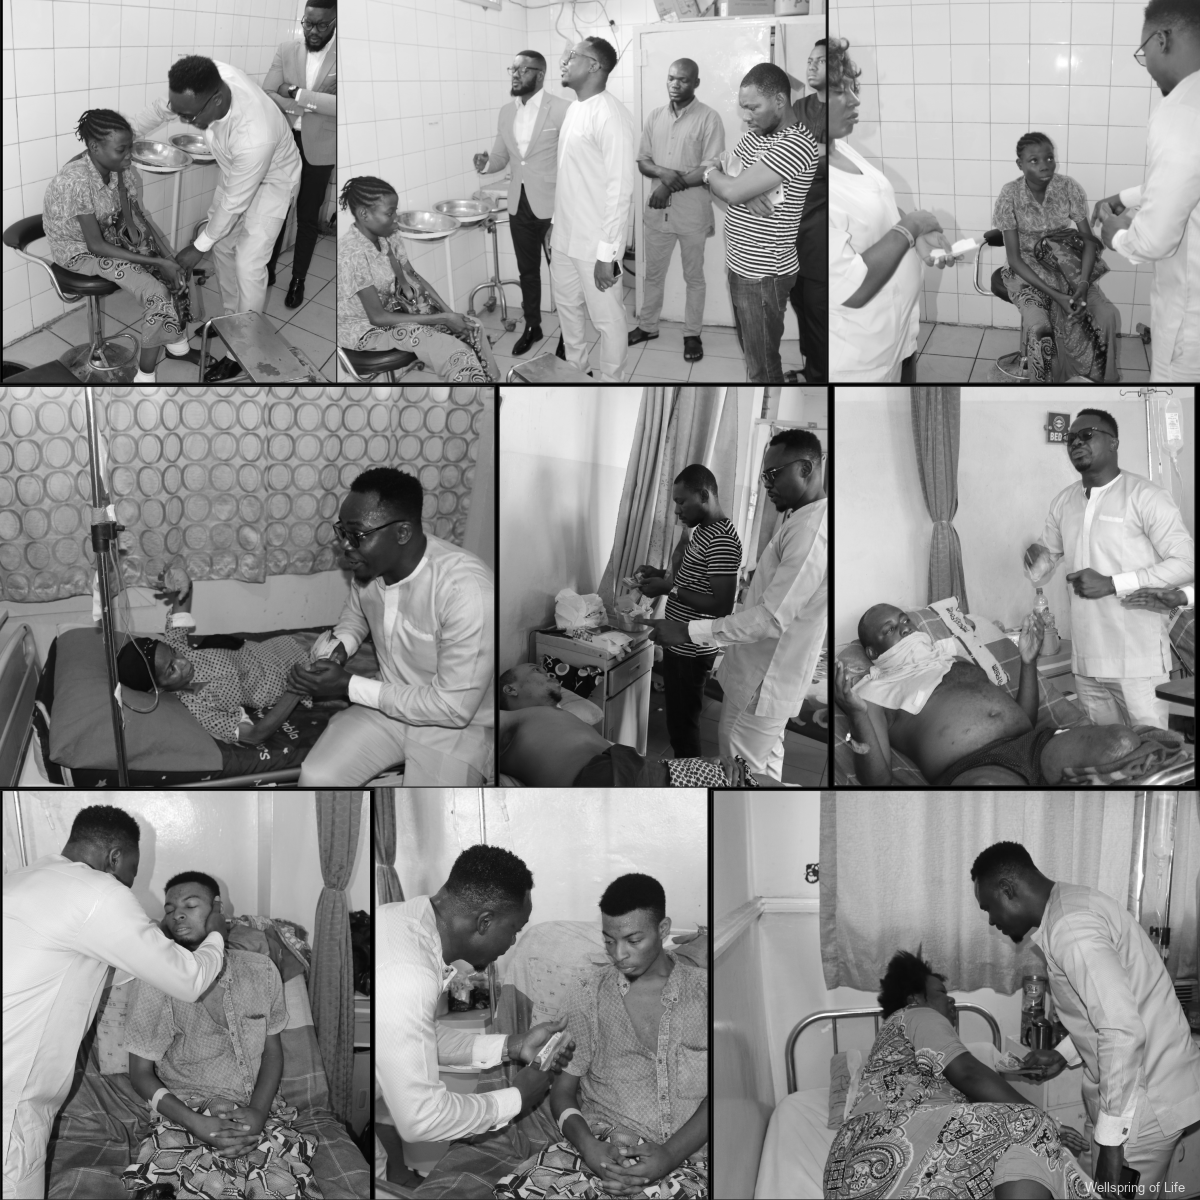 WellSpring-of-Life-at-wuse-2-hospital